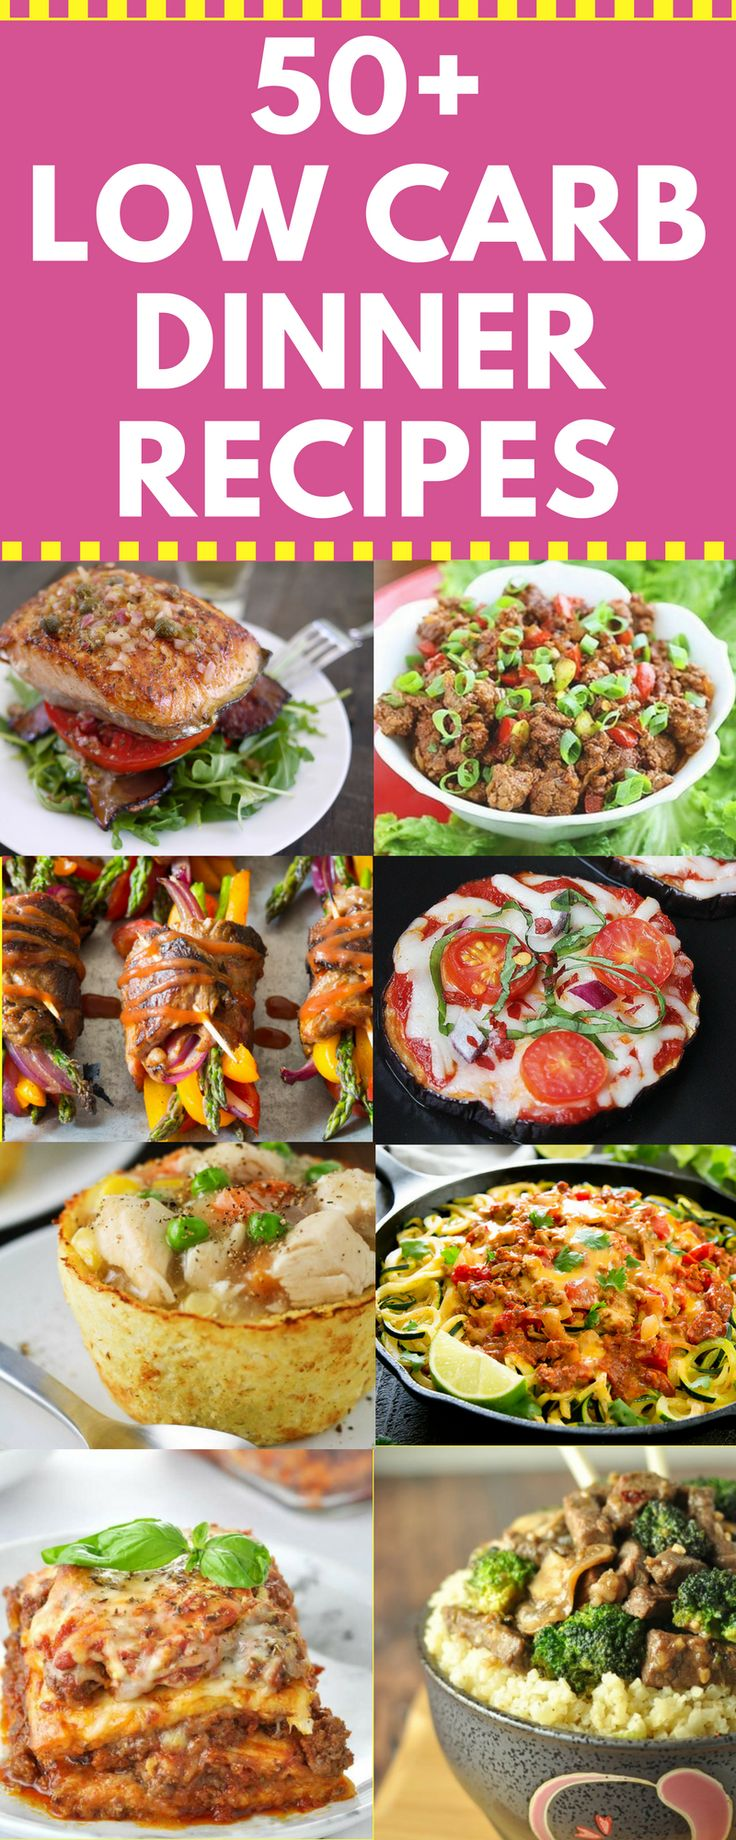 Check out 50+ Low Carb Dinner Recipes that are so good you won't even miss those extra carbs.